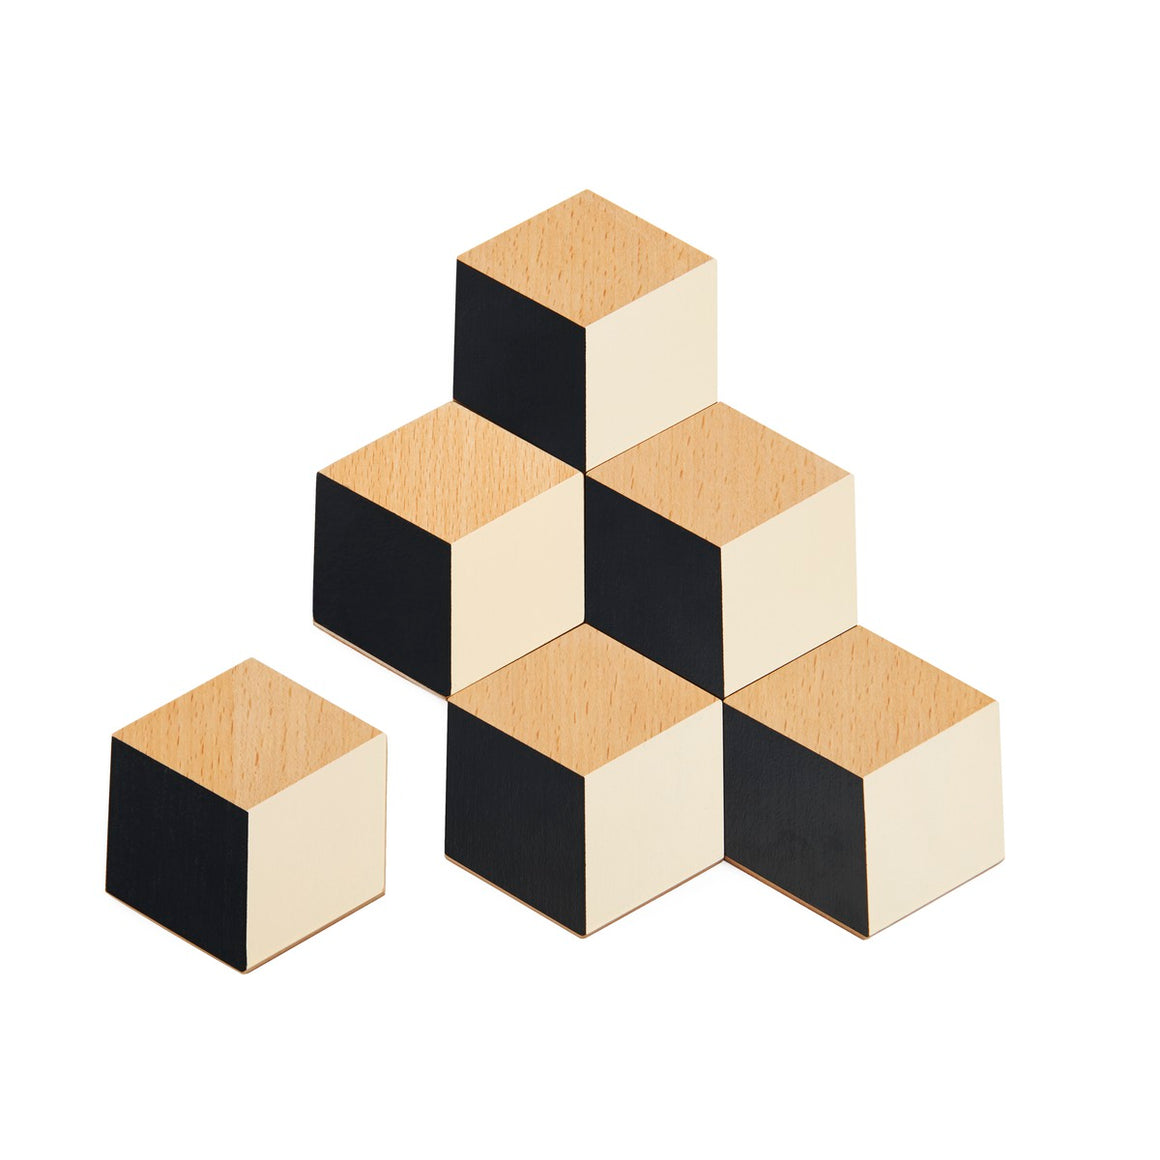 A set of 6 geometric stylised table coasters. Made to look like cubes, they feature Natural wood, as well as black and cream diamonds